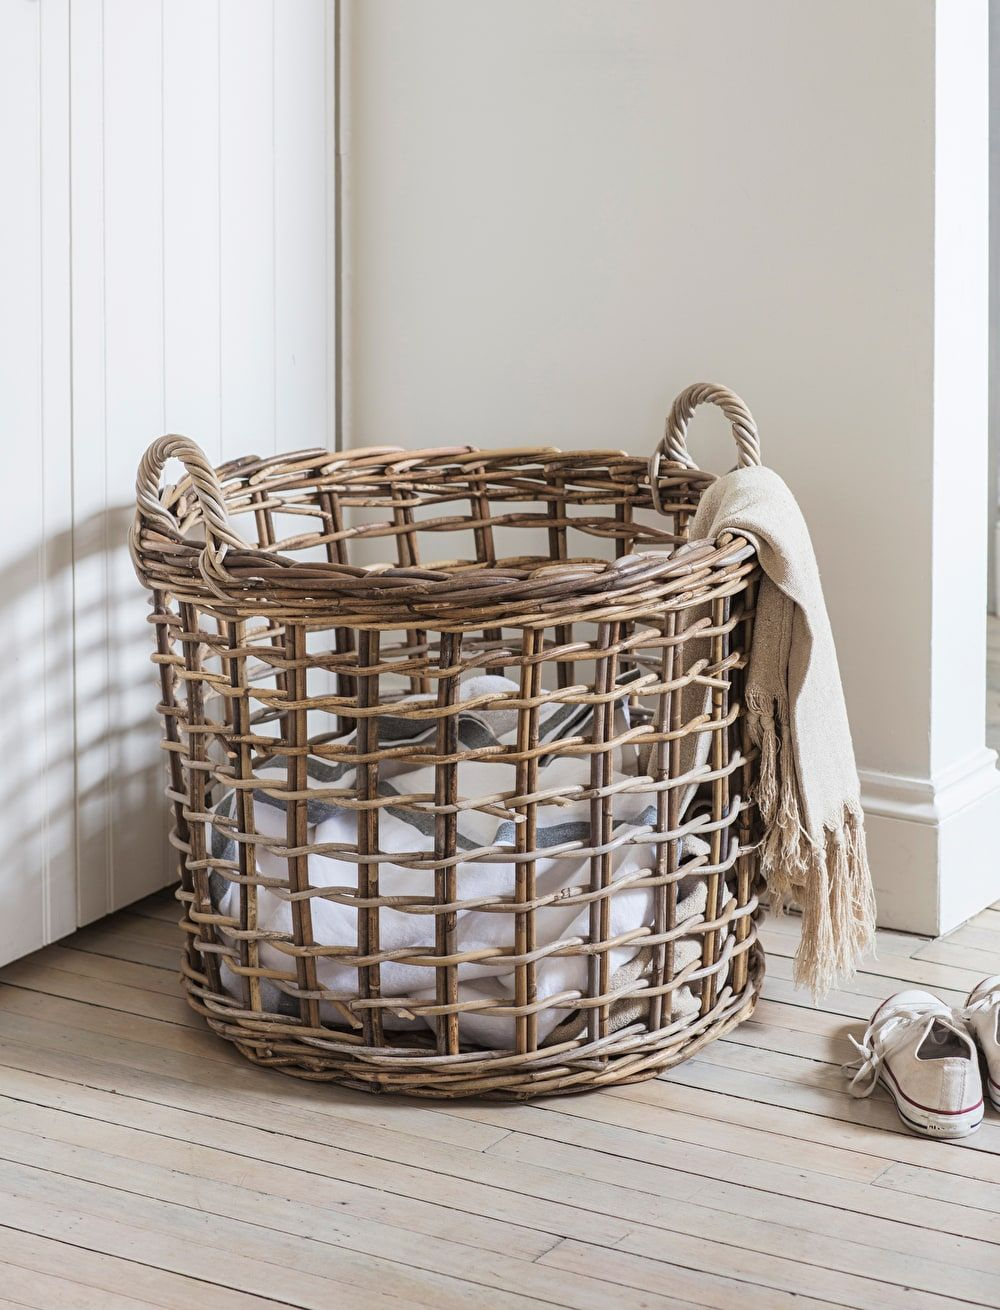 Beautifully Handwoven The Open Weave Basket Can Be Used To Store A Multitude Of Items Throughout The H Pletenie Korzin Korzina Dlya Belya Korzinki Dlya Hraneniya